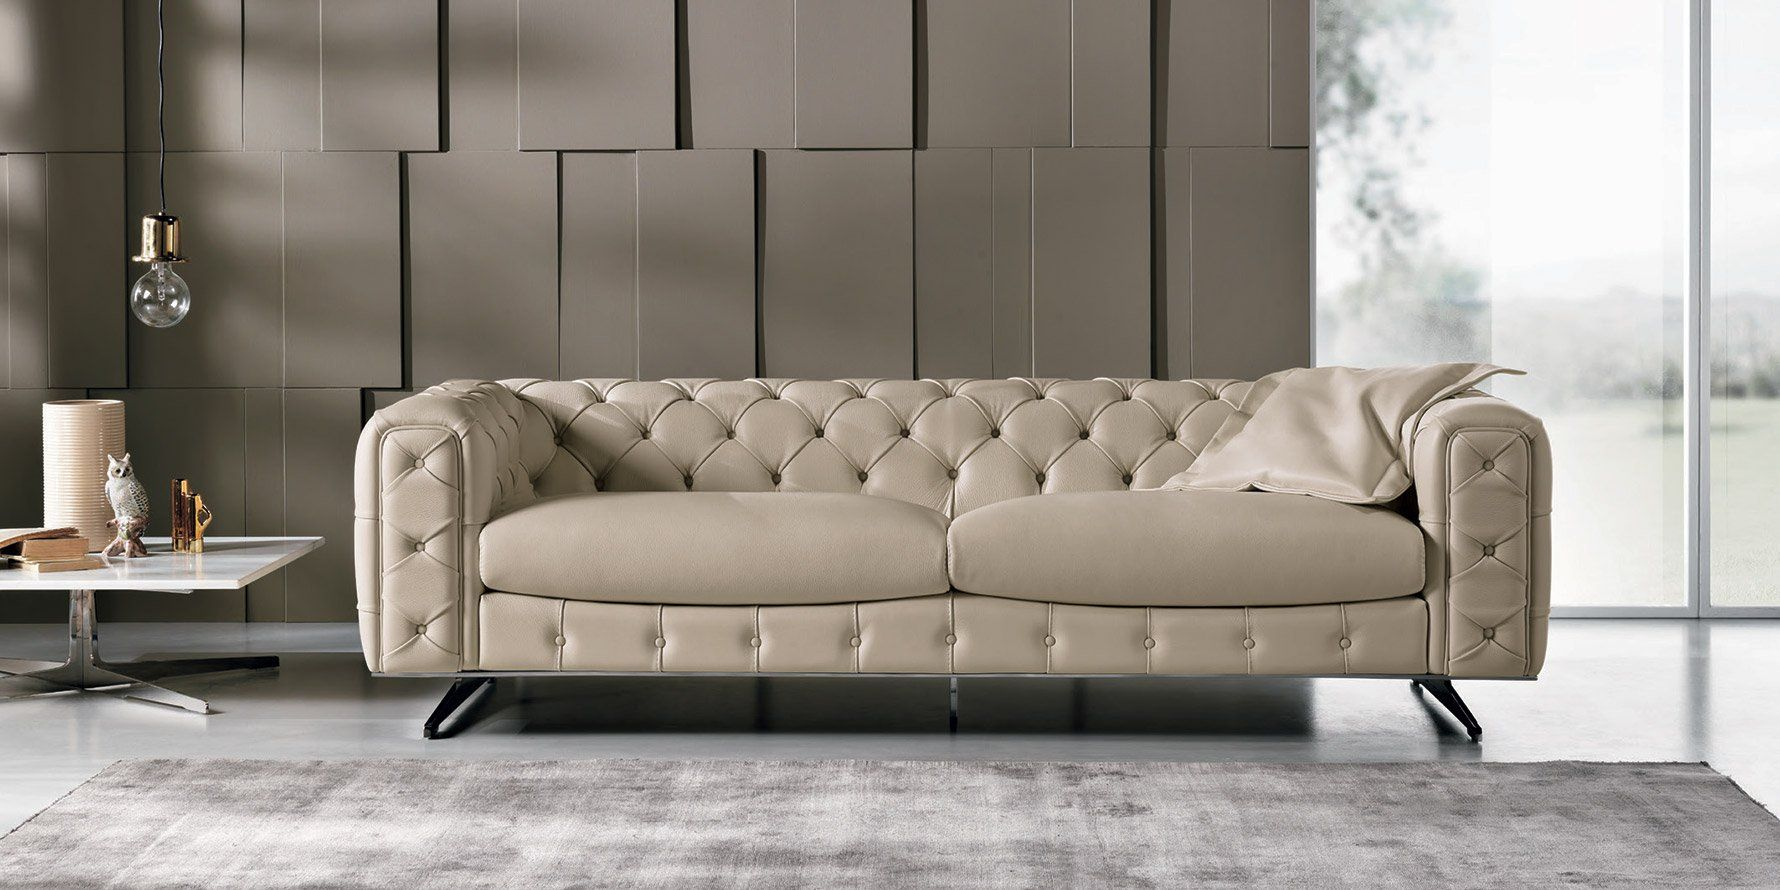 A Complete Range Of Fine Italian Furniture In Los Angeles Italy 2000 Has Generous Selection Contemporary Modern Providing